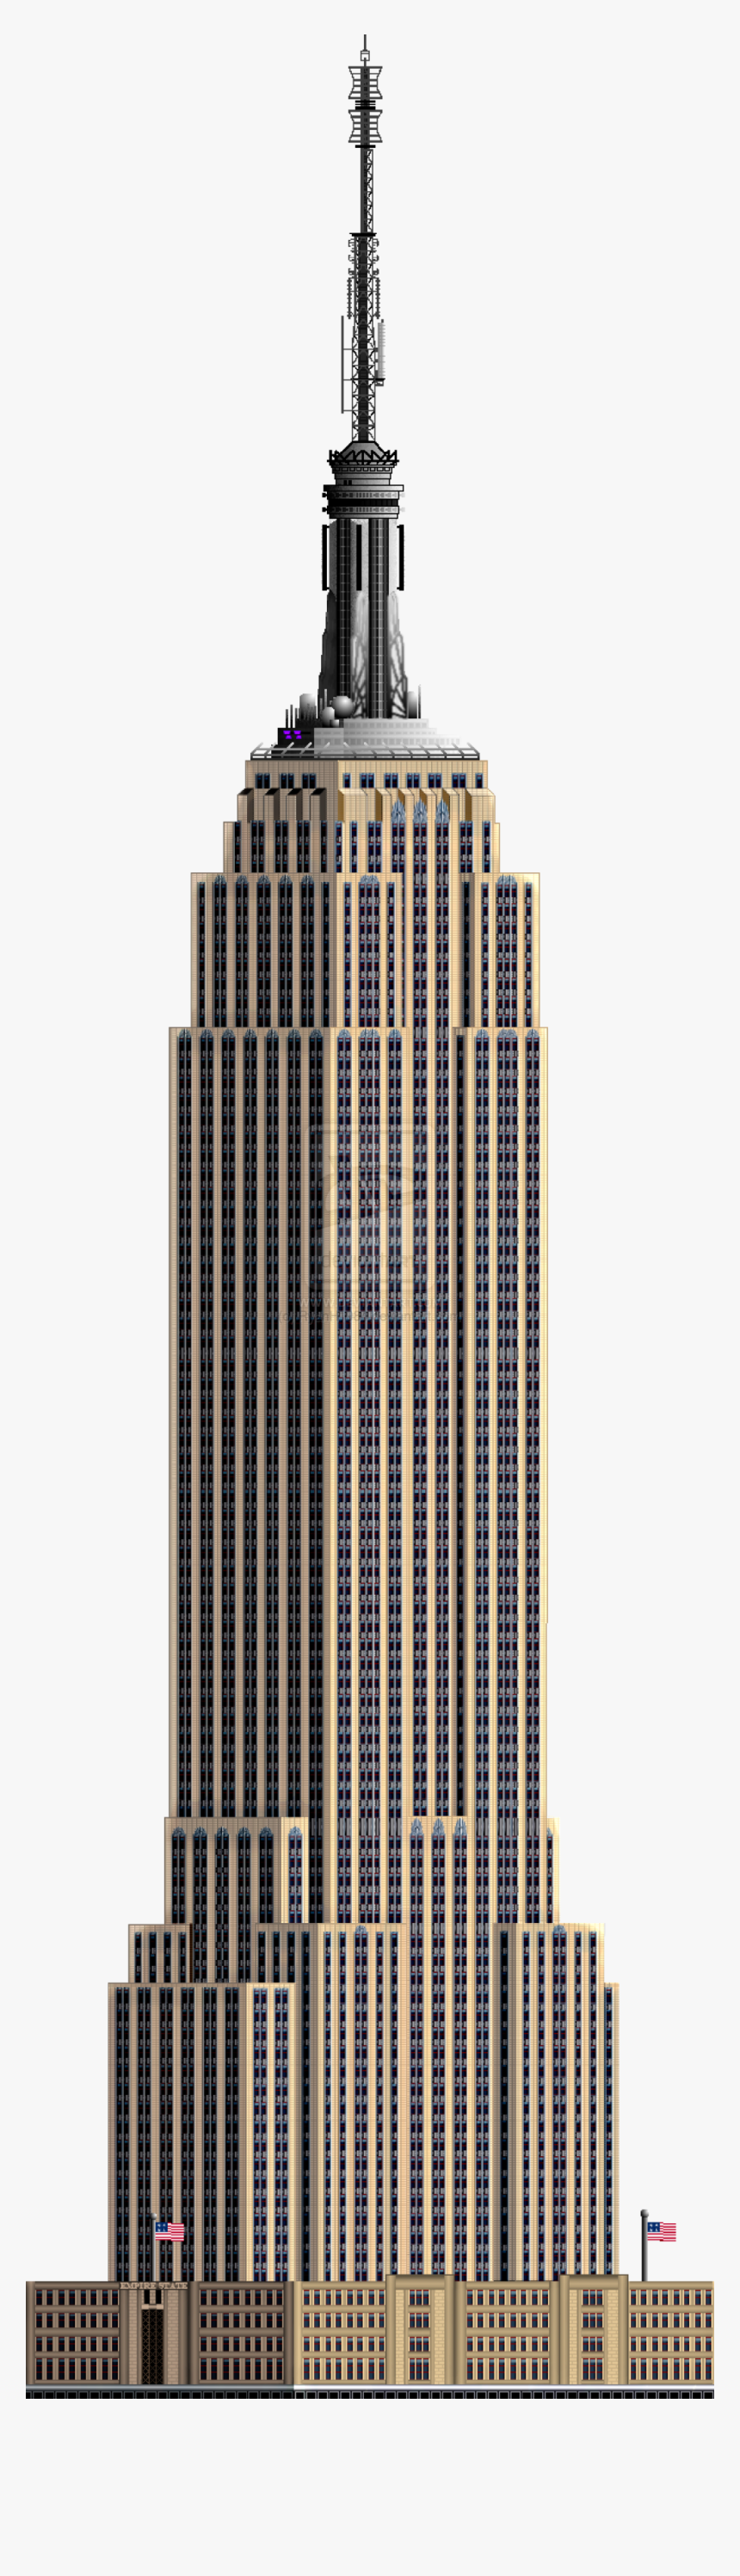 Building Picture Png Images - Empire State Building Png, Transparent Png, Free Download